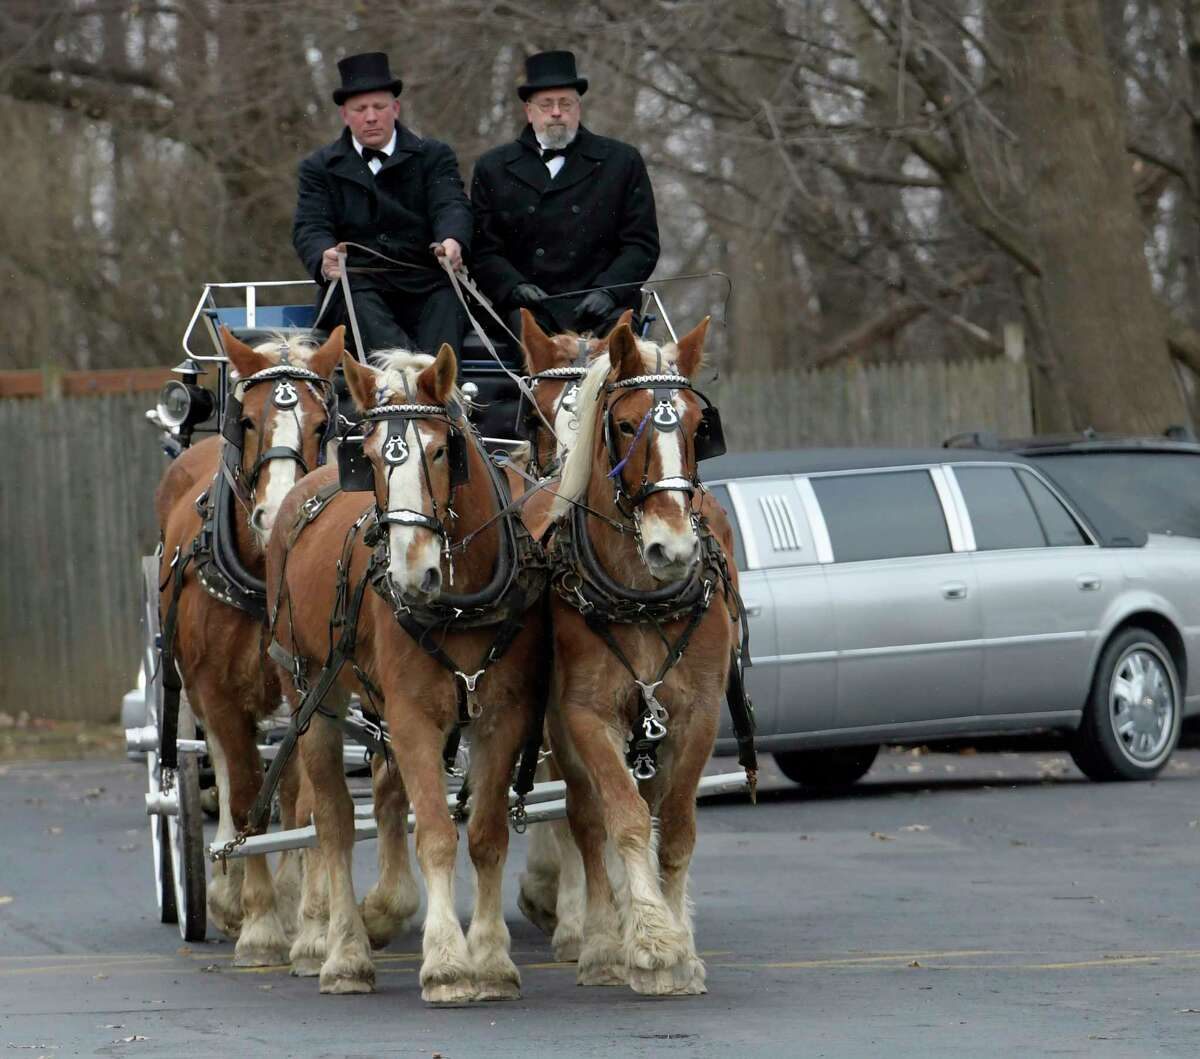 The casket carrying the remains of local businessman J. Kenneth Ray is carried to Our Lady of Victory Church on a horse drawn carriage driven by Kurt Johnson, left and Bill Clark, from the funeral home on Hoosick Street on Thursday, March 2, 2017, in North Hoosic, N.Y. (Skip Dickstein/Times Union)